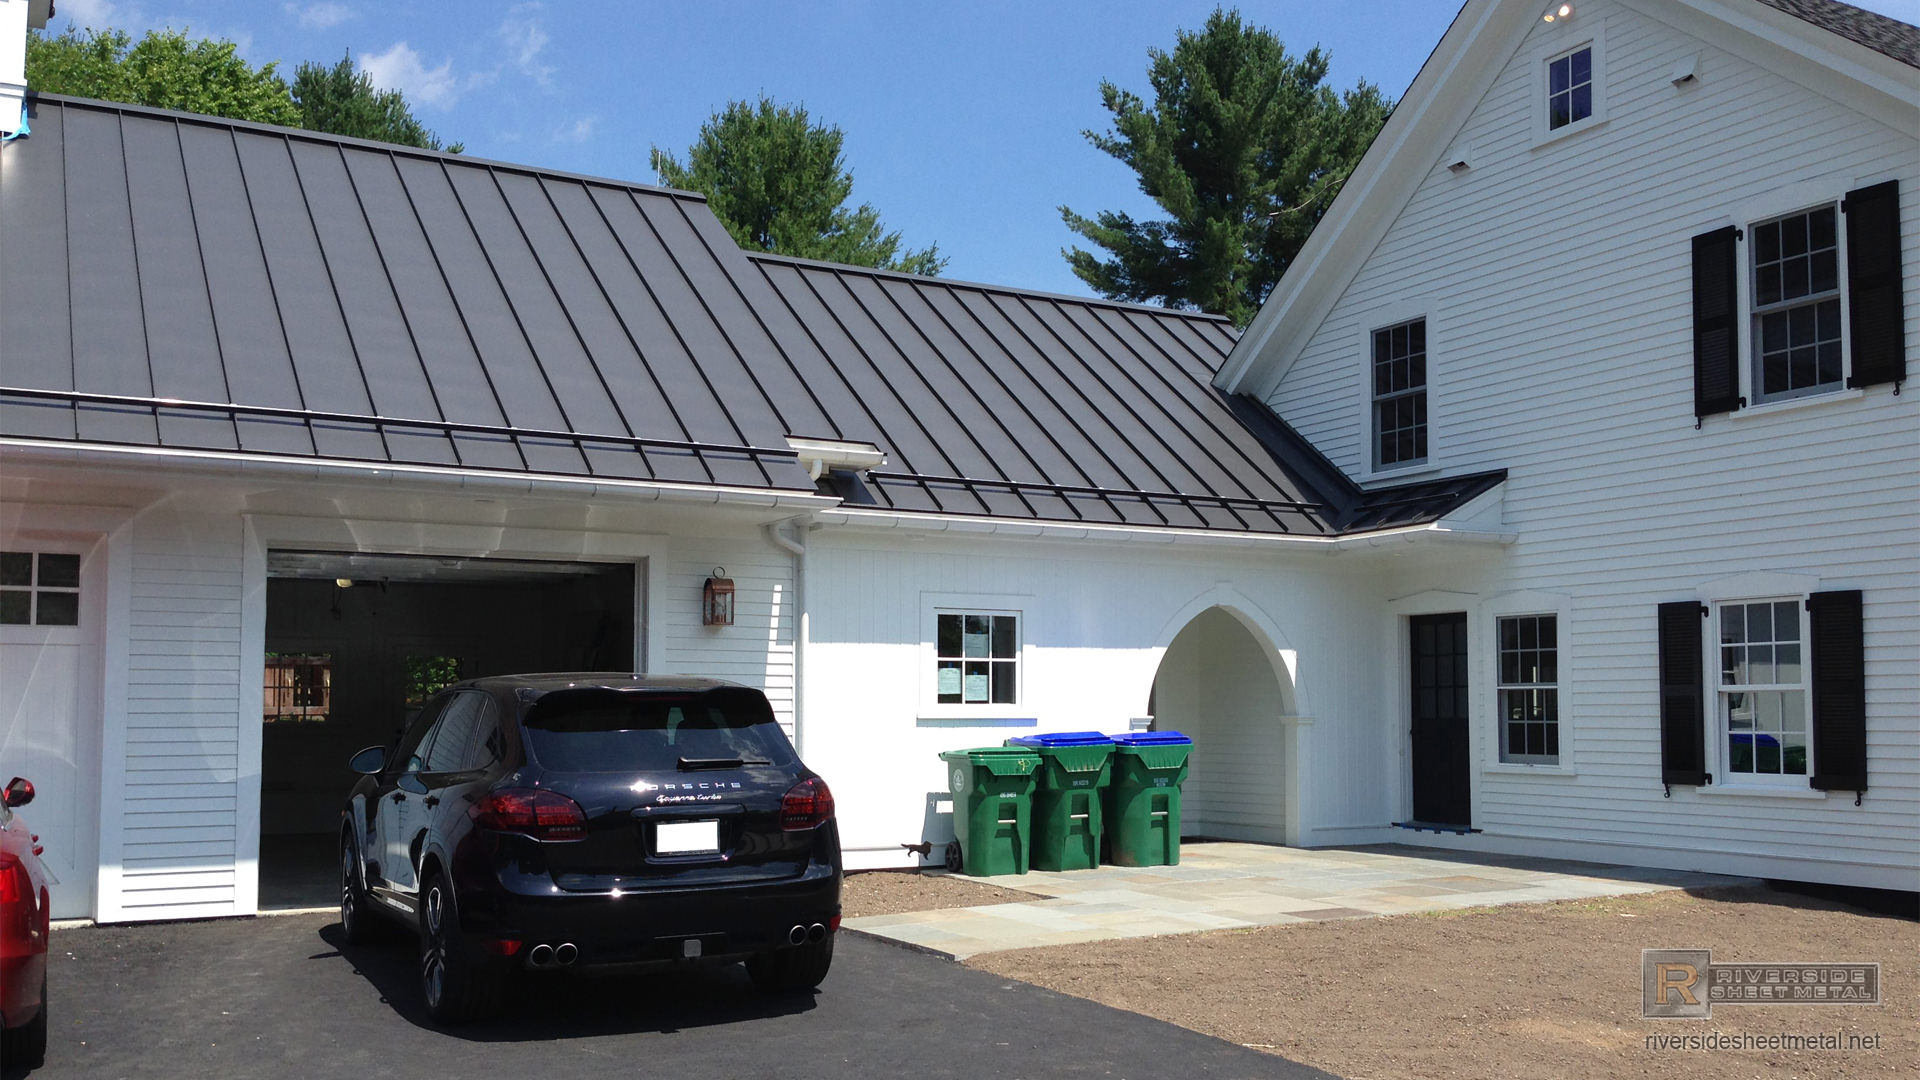 Matte Black Aluminum Roofing With Colorgard Snow Retention